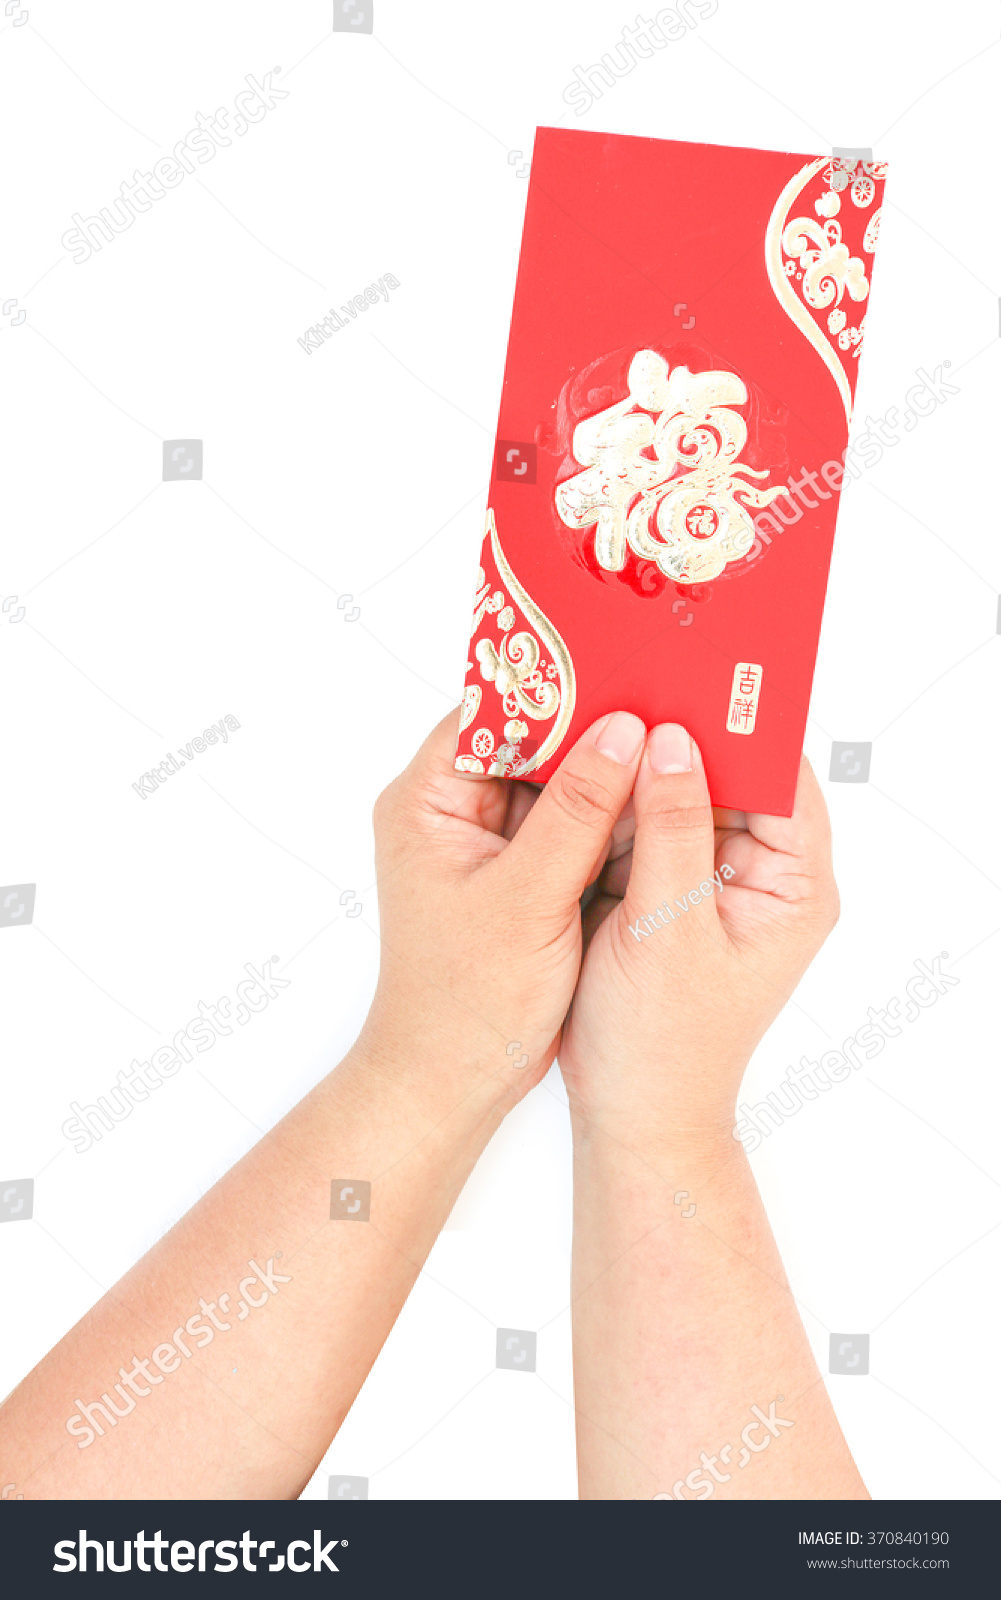 Give red pockets chinese new year stock photo 370840190 shutterstock give red pockets for the chinese new year chinese text is mean rich gold biocorpaavc Image collections